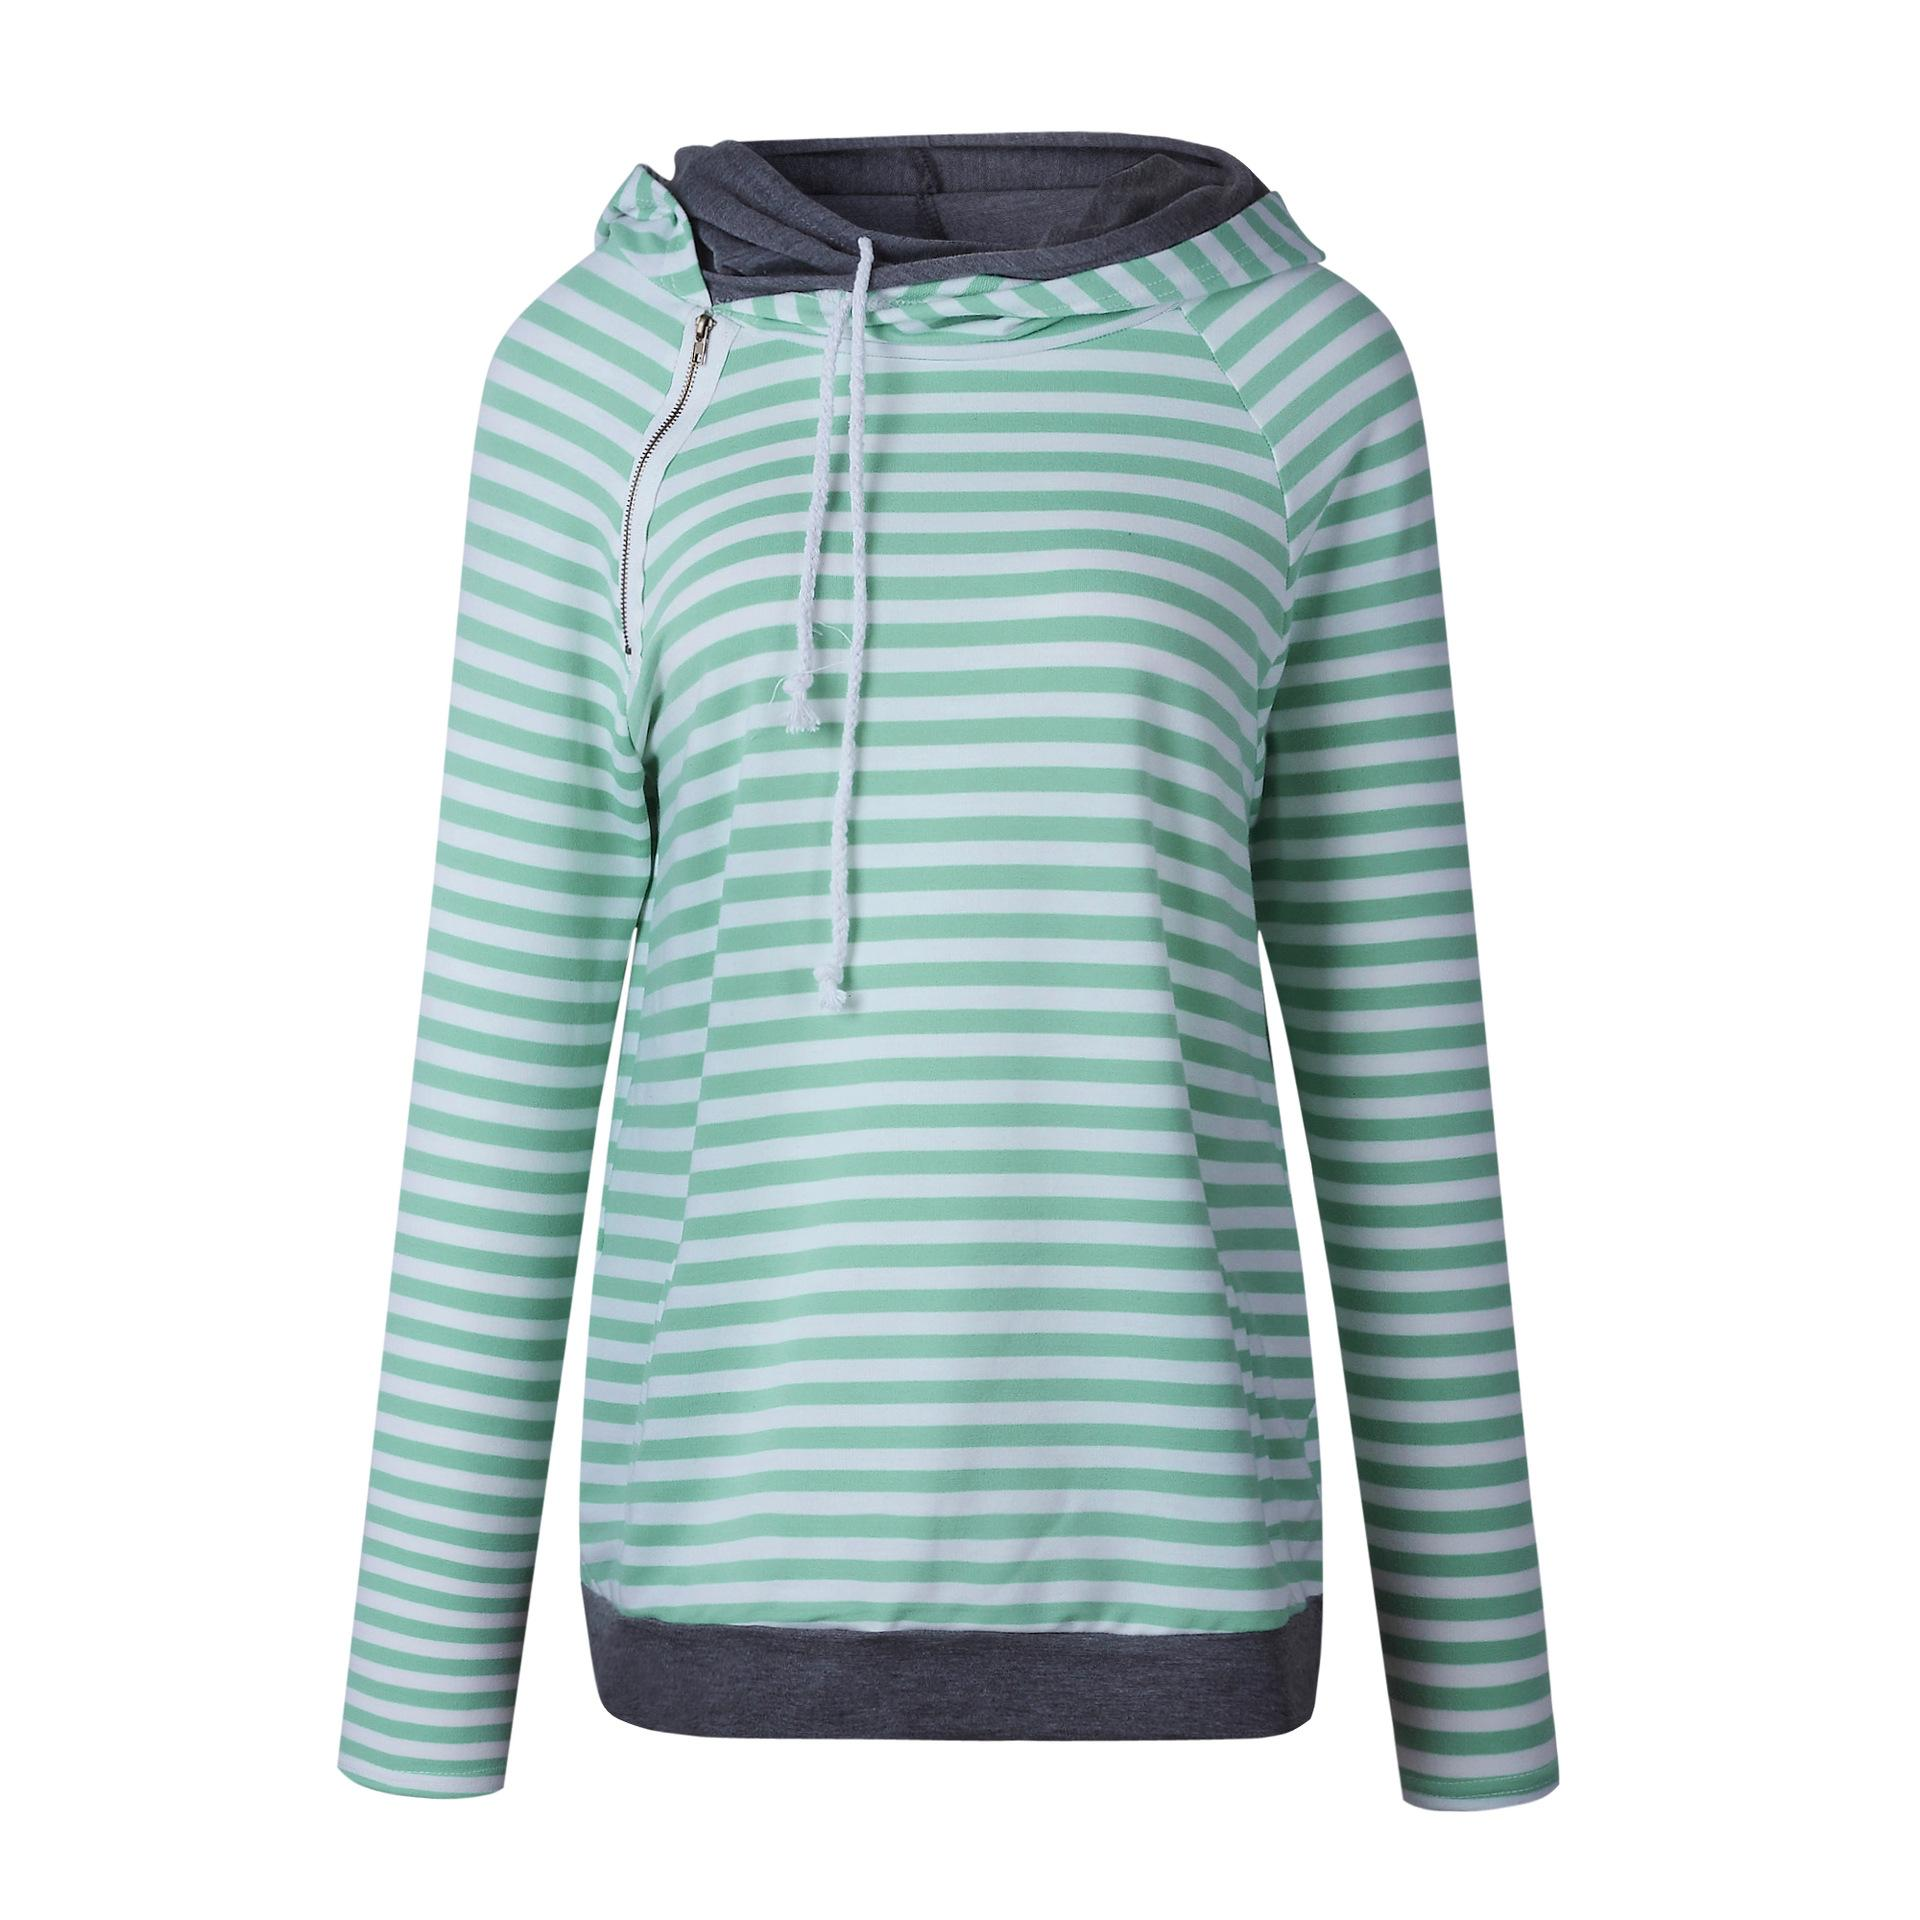 Striped Hoodies Women 2018 Spring 3xl Plus Size Pullovers Zip Green Pink  Thick Women Hooded Sweatshirt Autumn Casual Wear UK 2019 From Beasy112 9f19e6762